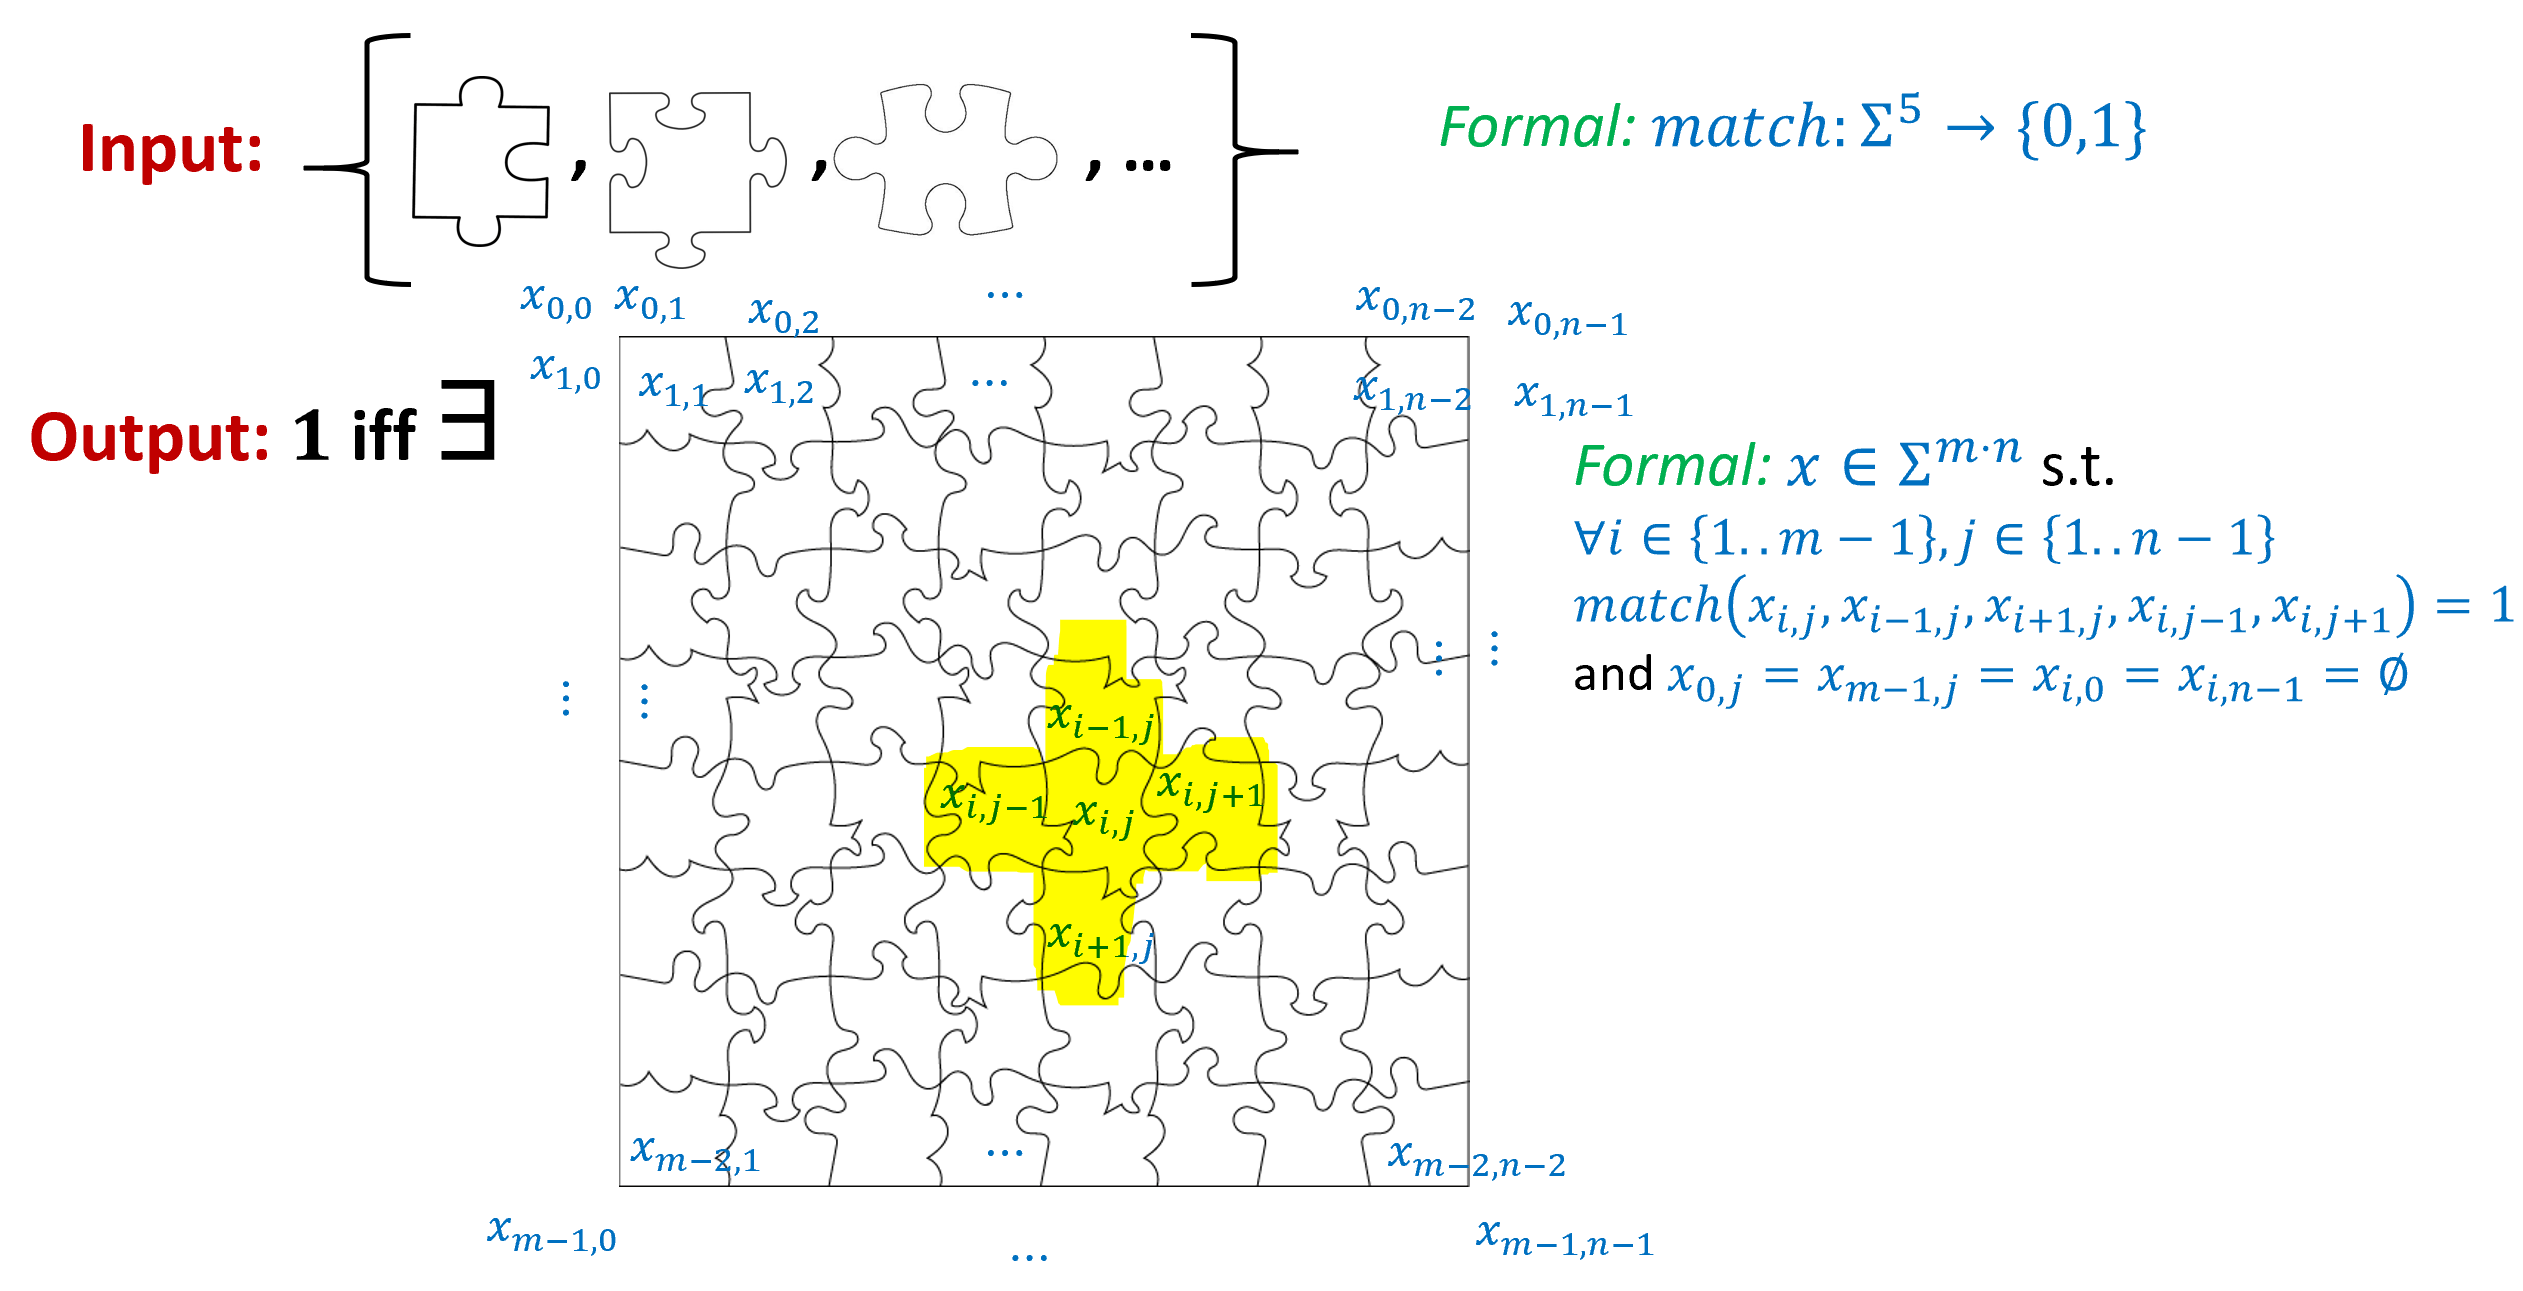 10.3: In the puzzle problem, the input can be thought of as a finite collection \Sigma of types of puzzle pieces and the goal is to find out whether or not find a way to arrange pieces from these types in a rectangle. Formally, we model the input as a pair of functions match_{\leftrightarrow},match_{\updownarrow}:\Sigma^2 \rightarrow \{0,1\} that such that match_{\leftrightarrow}(left,right)=1 (respectively match_{\updownarrow}(up,down)=1 ) if the pair of pieces are compatible when placed in their respective positions. We assume \Sigma contains a special symbol \varnothing corresponding to having no piece, and an arrangement of puzzle pieces by an (m-2)\times(n-2) rectangle is modeled by a string x\in \Sigma^{m\cdot n} whose ``outer coordinates'' are \emptyset and such that for every i \in [n-1],j \in [m-1], match_{\updownarrow}(x_{i,j},x_{i+1,j})=1 and match_{\leftrightarrow}(x_{i,j},x_{i,j+1})=1.